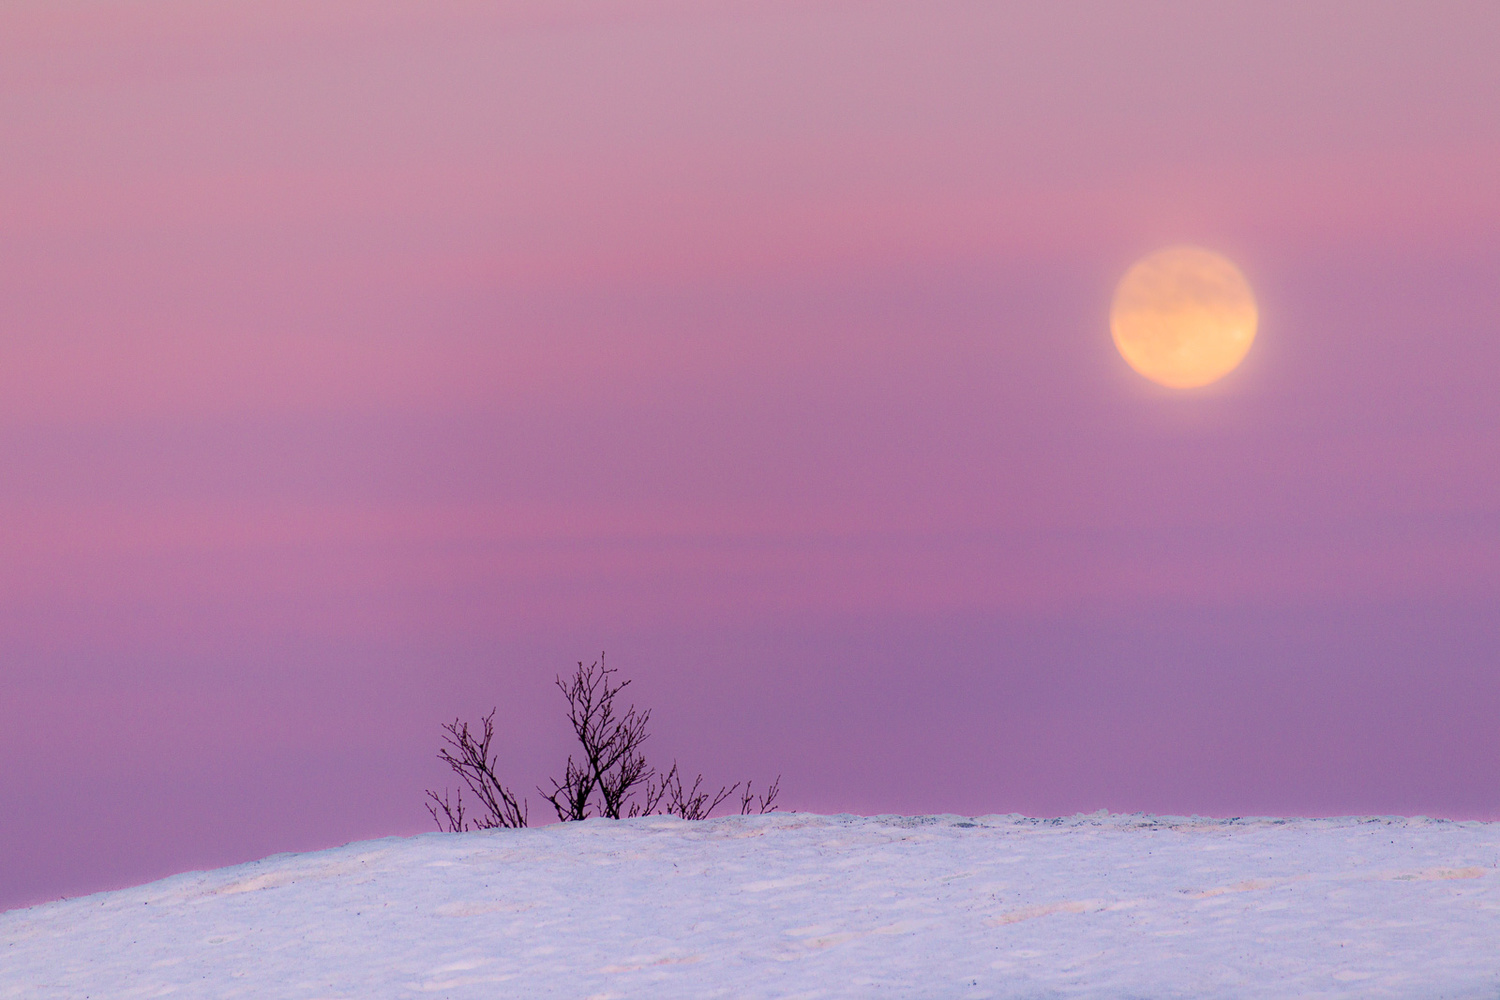 Moon in Sunset by Trygve Selmer